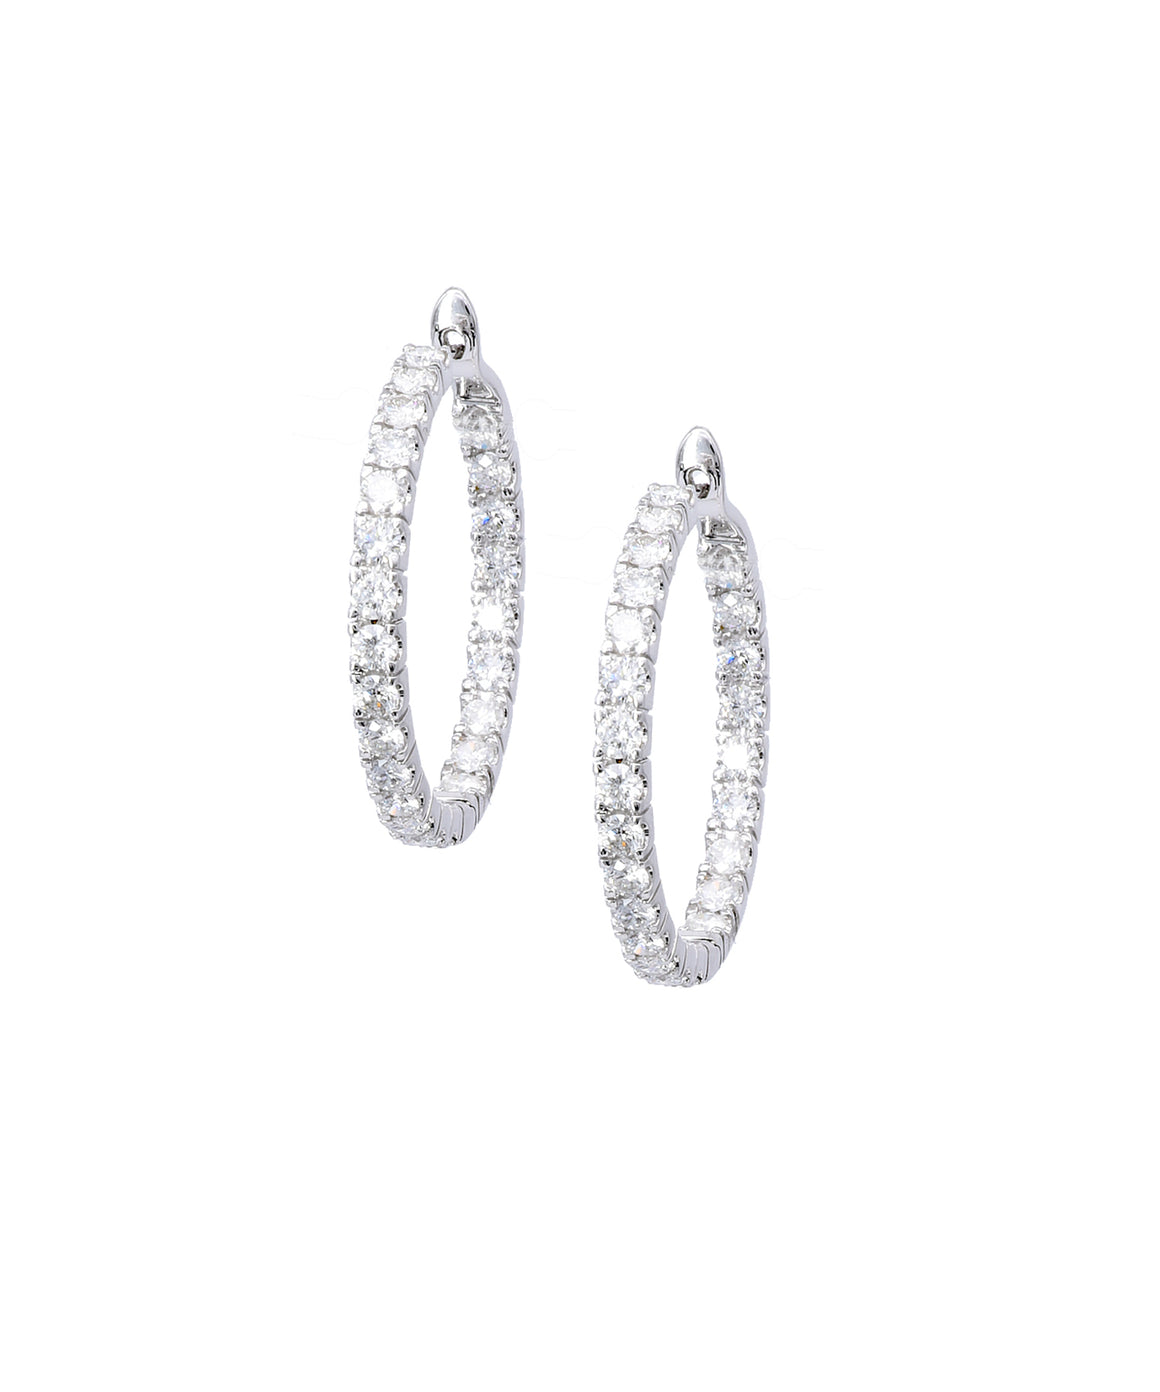 Round Hoop Earrings with Diamonds